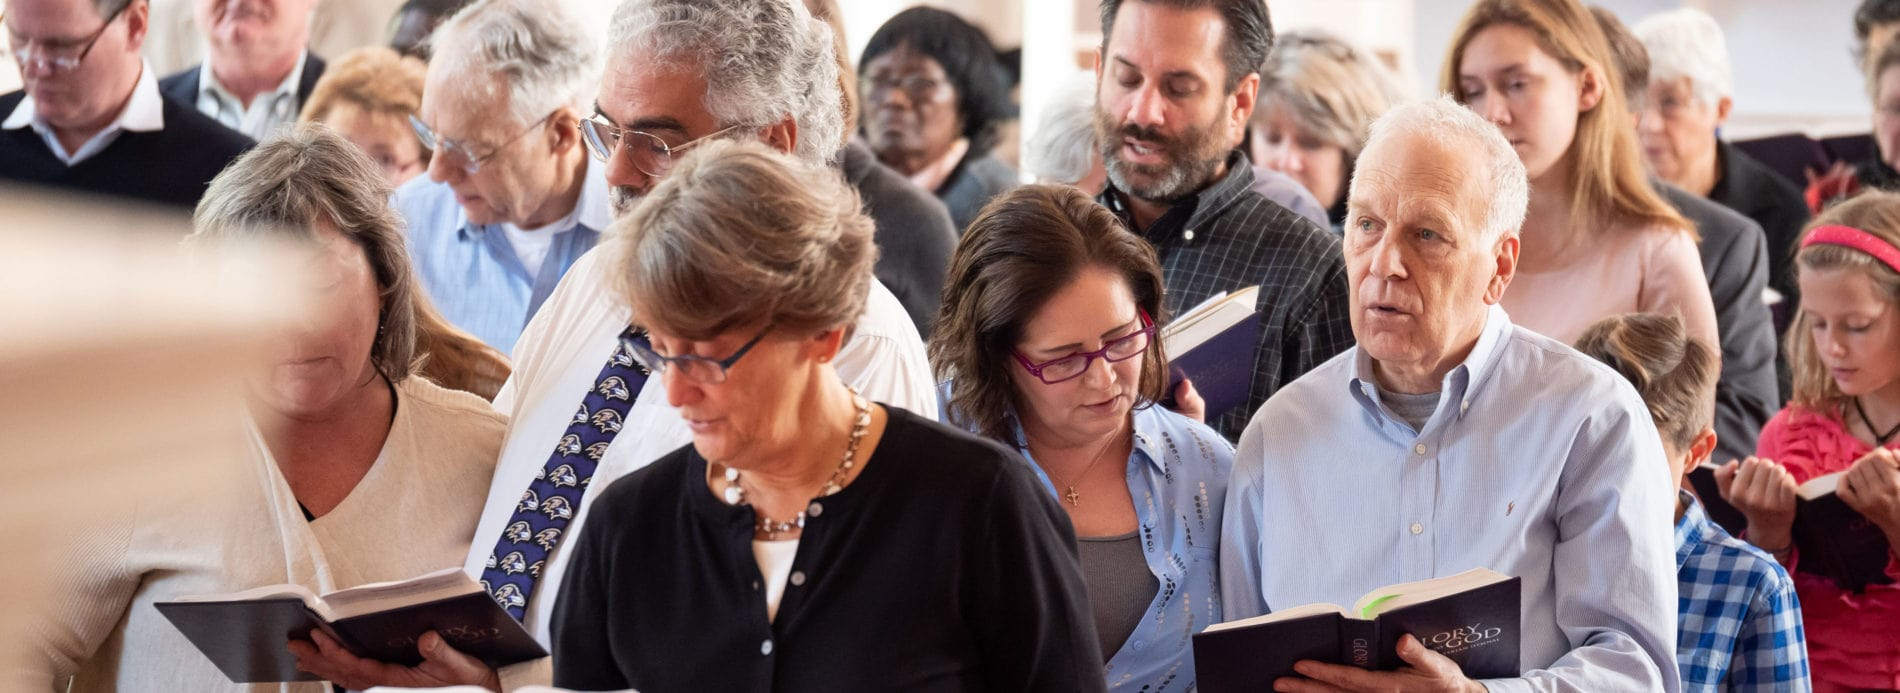 A group of congregants sings hymns.